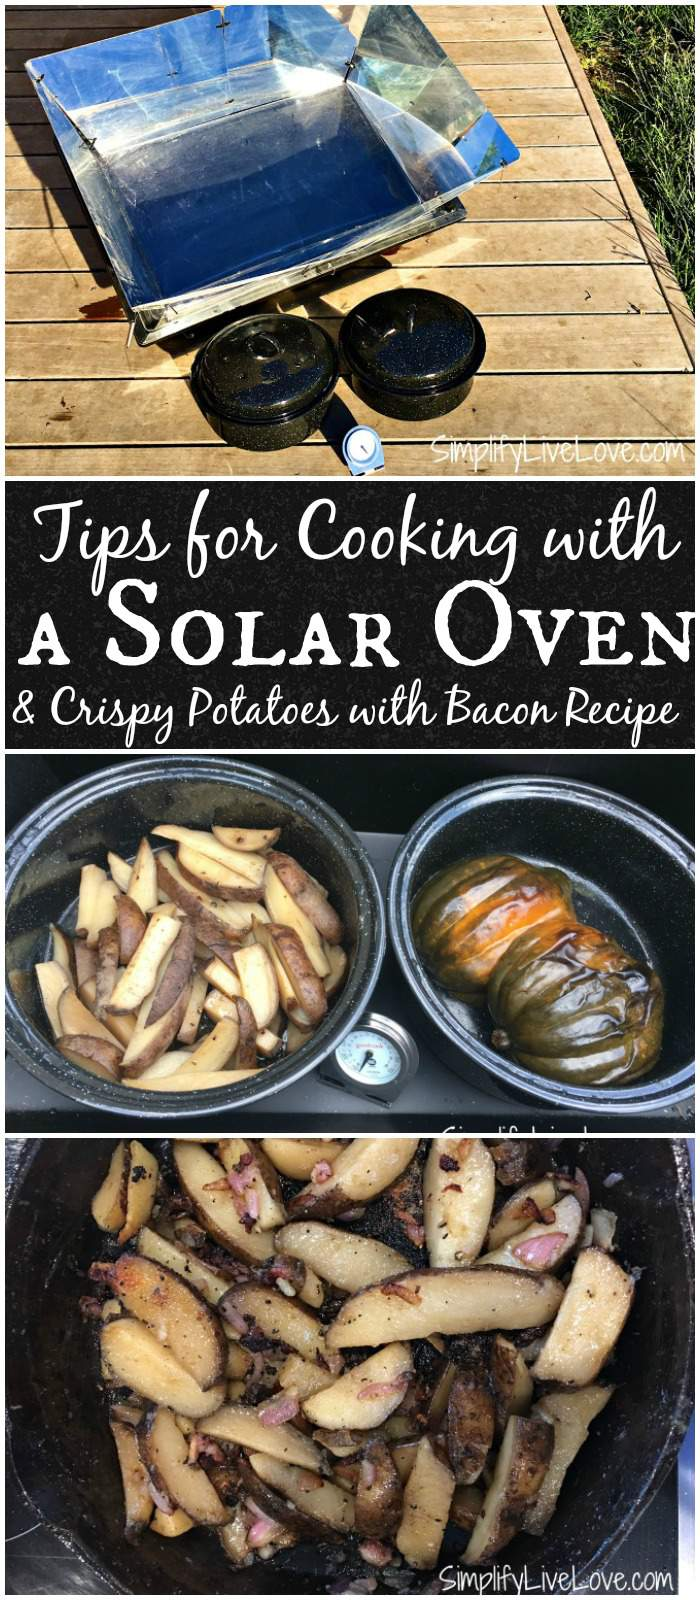 Tips for cooking with a solar oven and a recipe for crispy potatoes with bacon